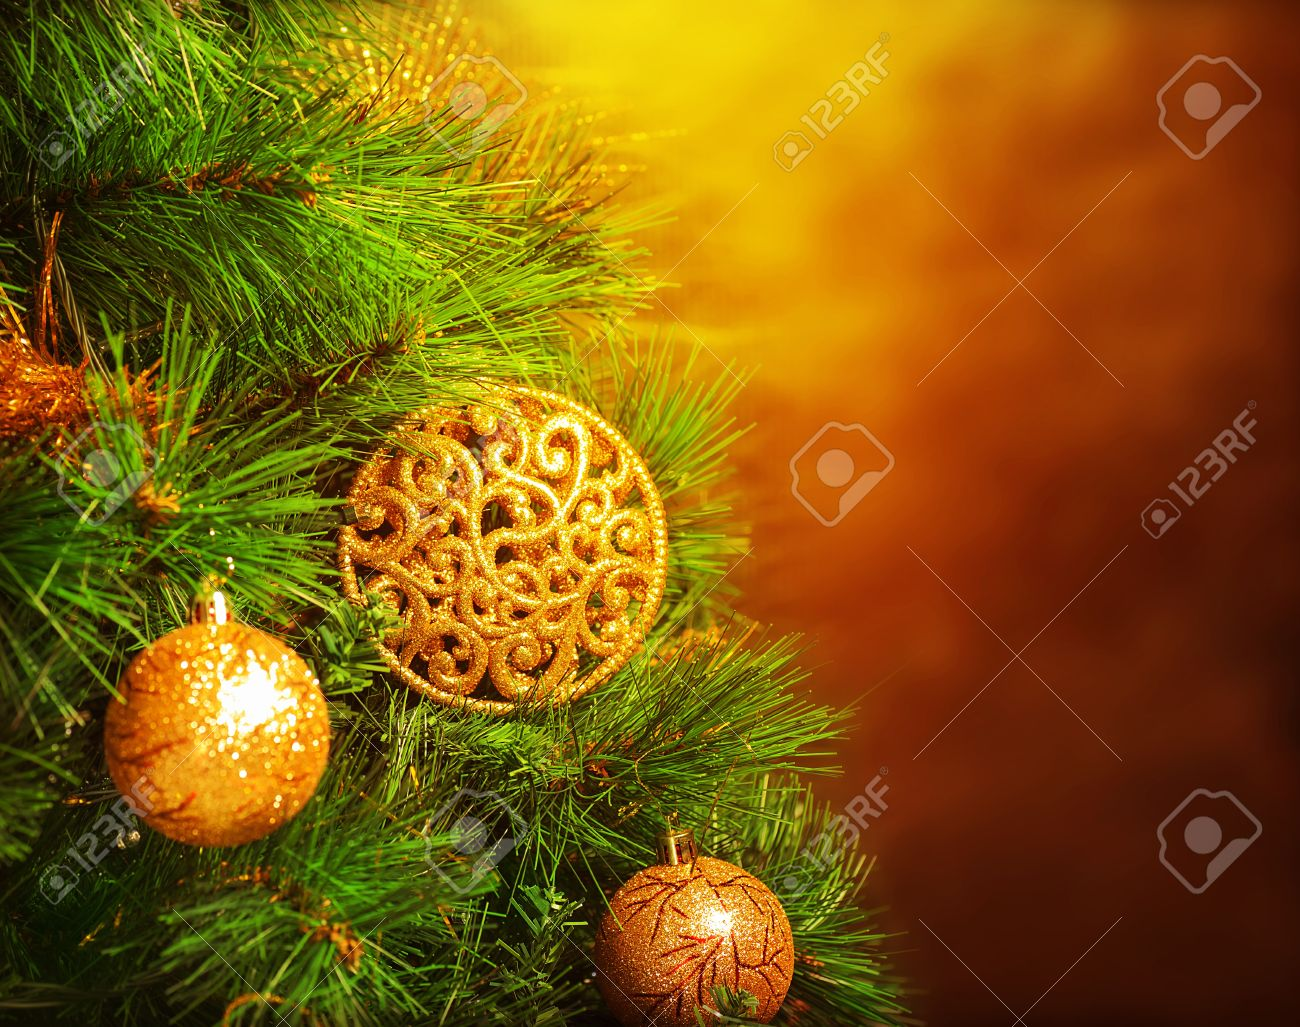 Photo of traditional Christmas tree isolated on brown grunge background, green fir decorated with golden bubbles toy, happy New Year greeting card, adorned pine tree at home, winter holidays - 16510563